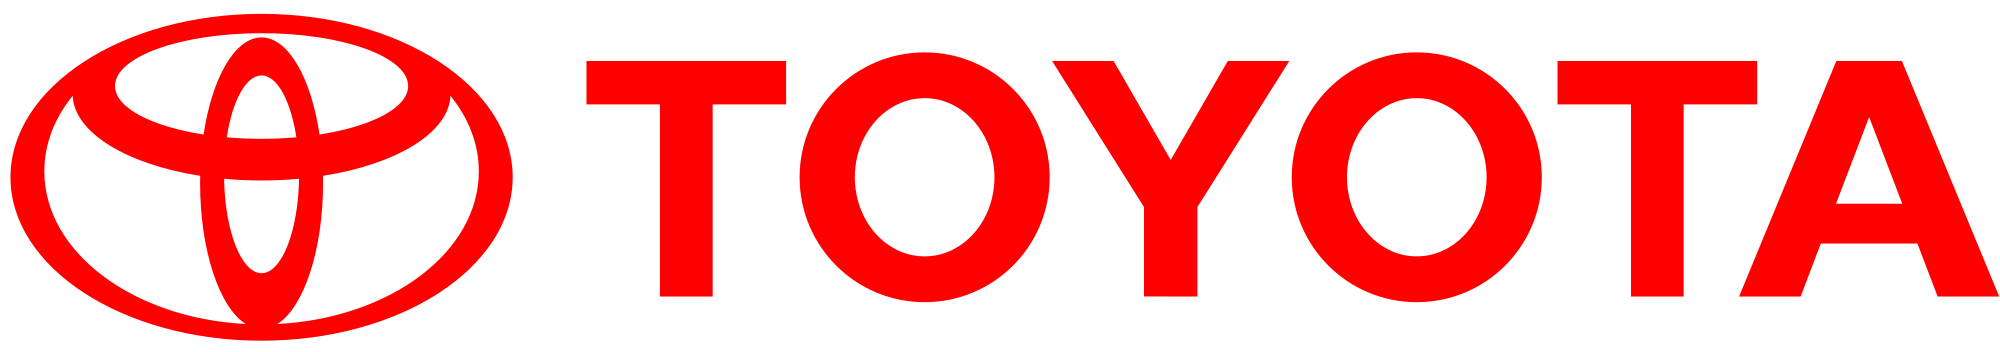 Toyota logo png. Transparent images all